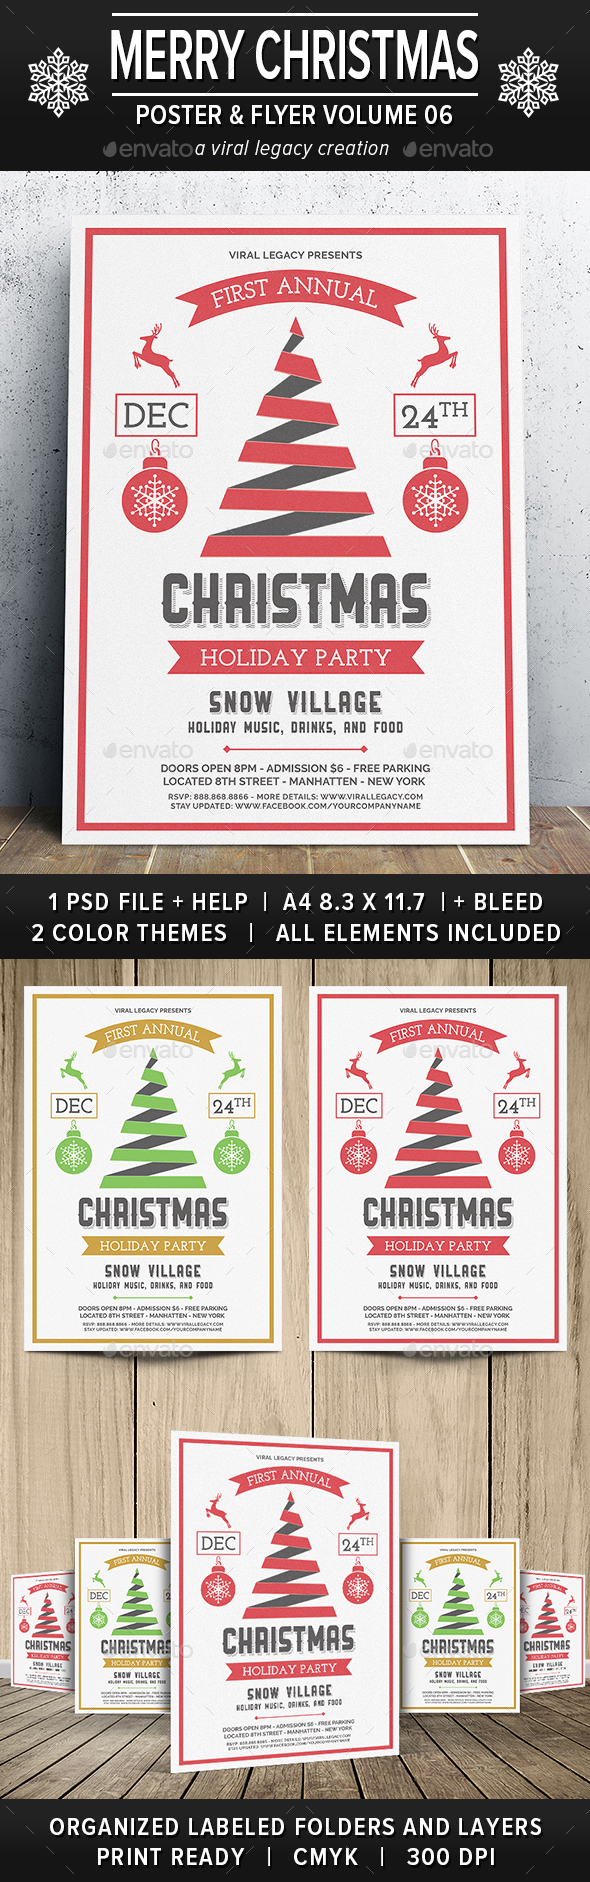 Merry Christmas Poster / Flyer V06 - Flyers Print Templates